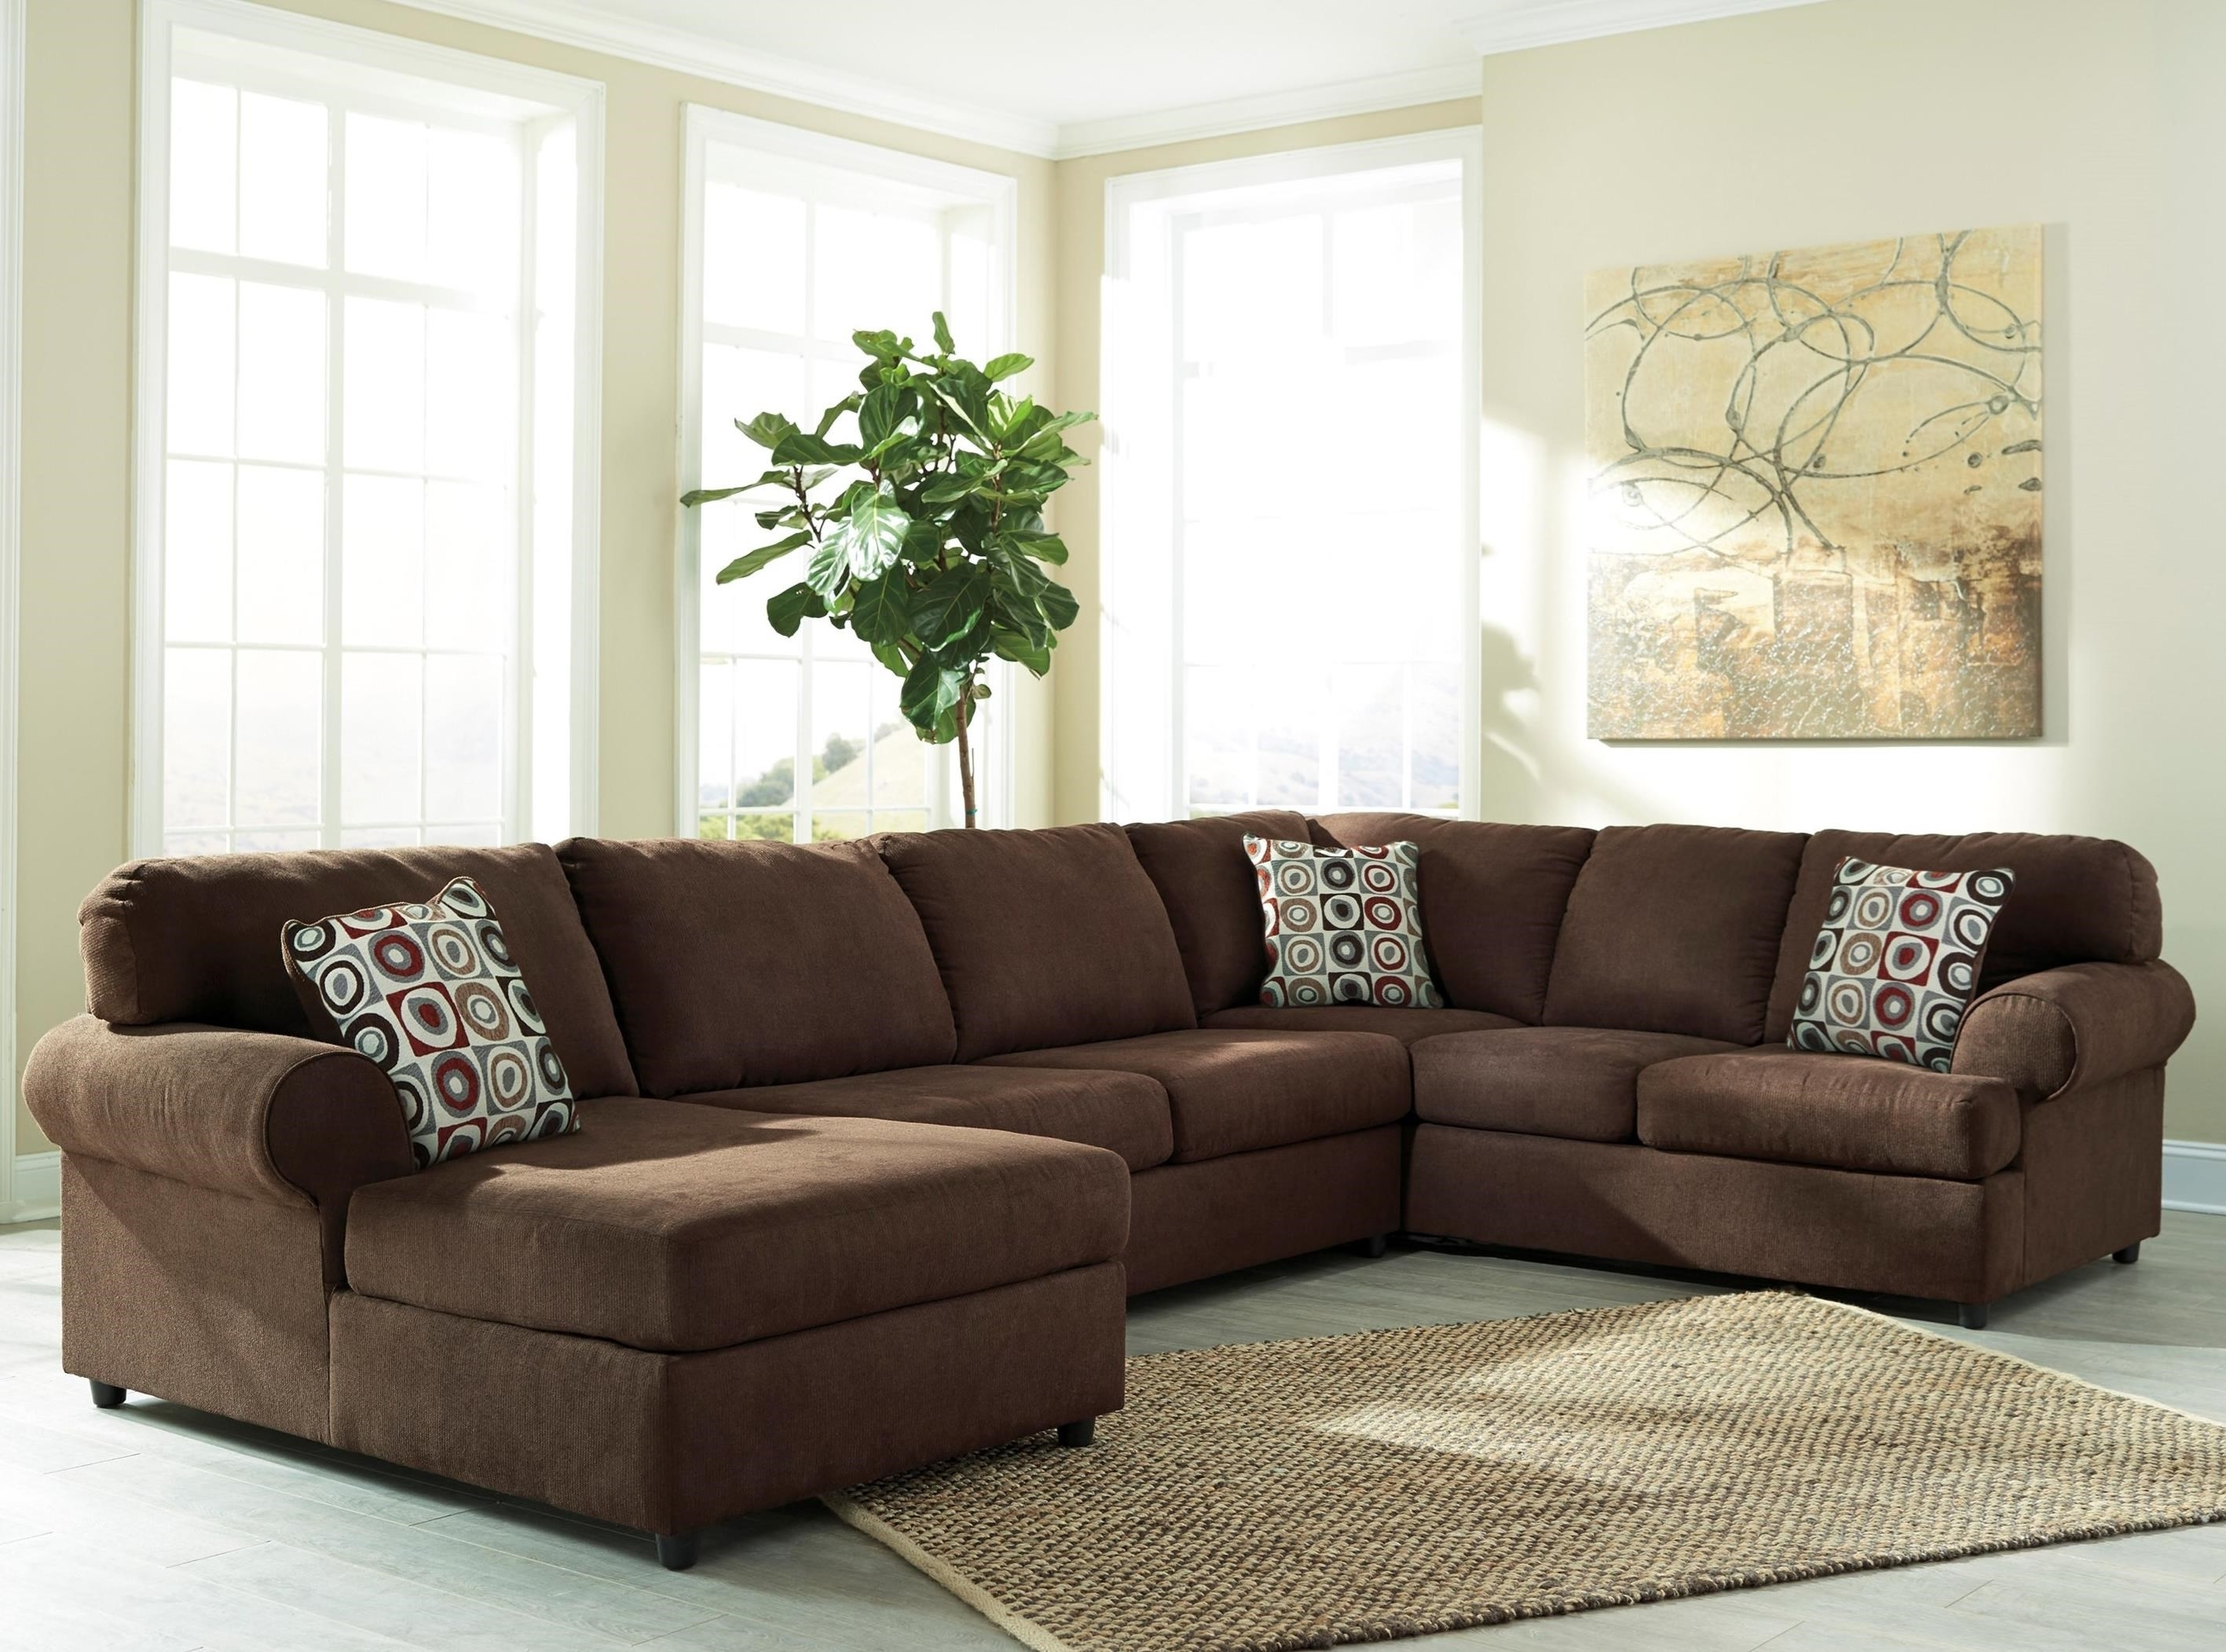 Furniture: Gorgeous King Hickory Sectional For Living Room Furniture Intended For Hickory Nc Sectional Sofas (View 2 of 10)